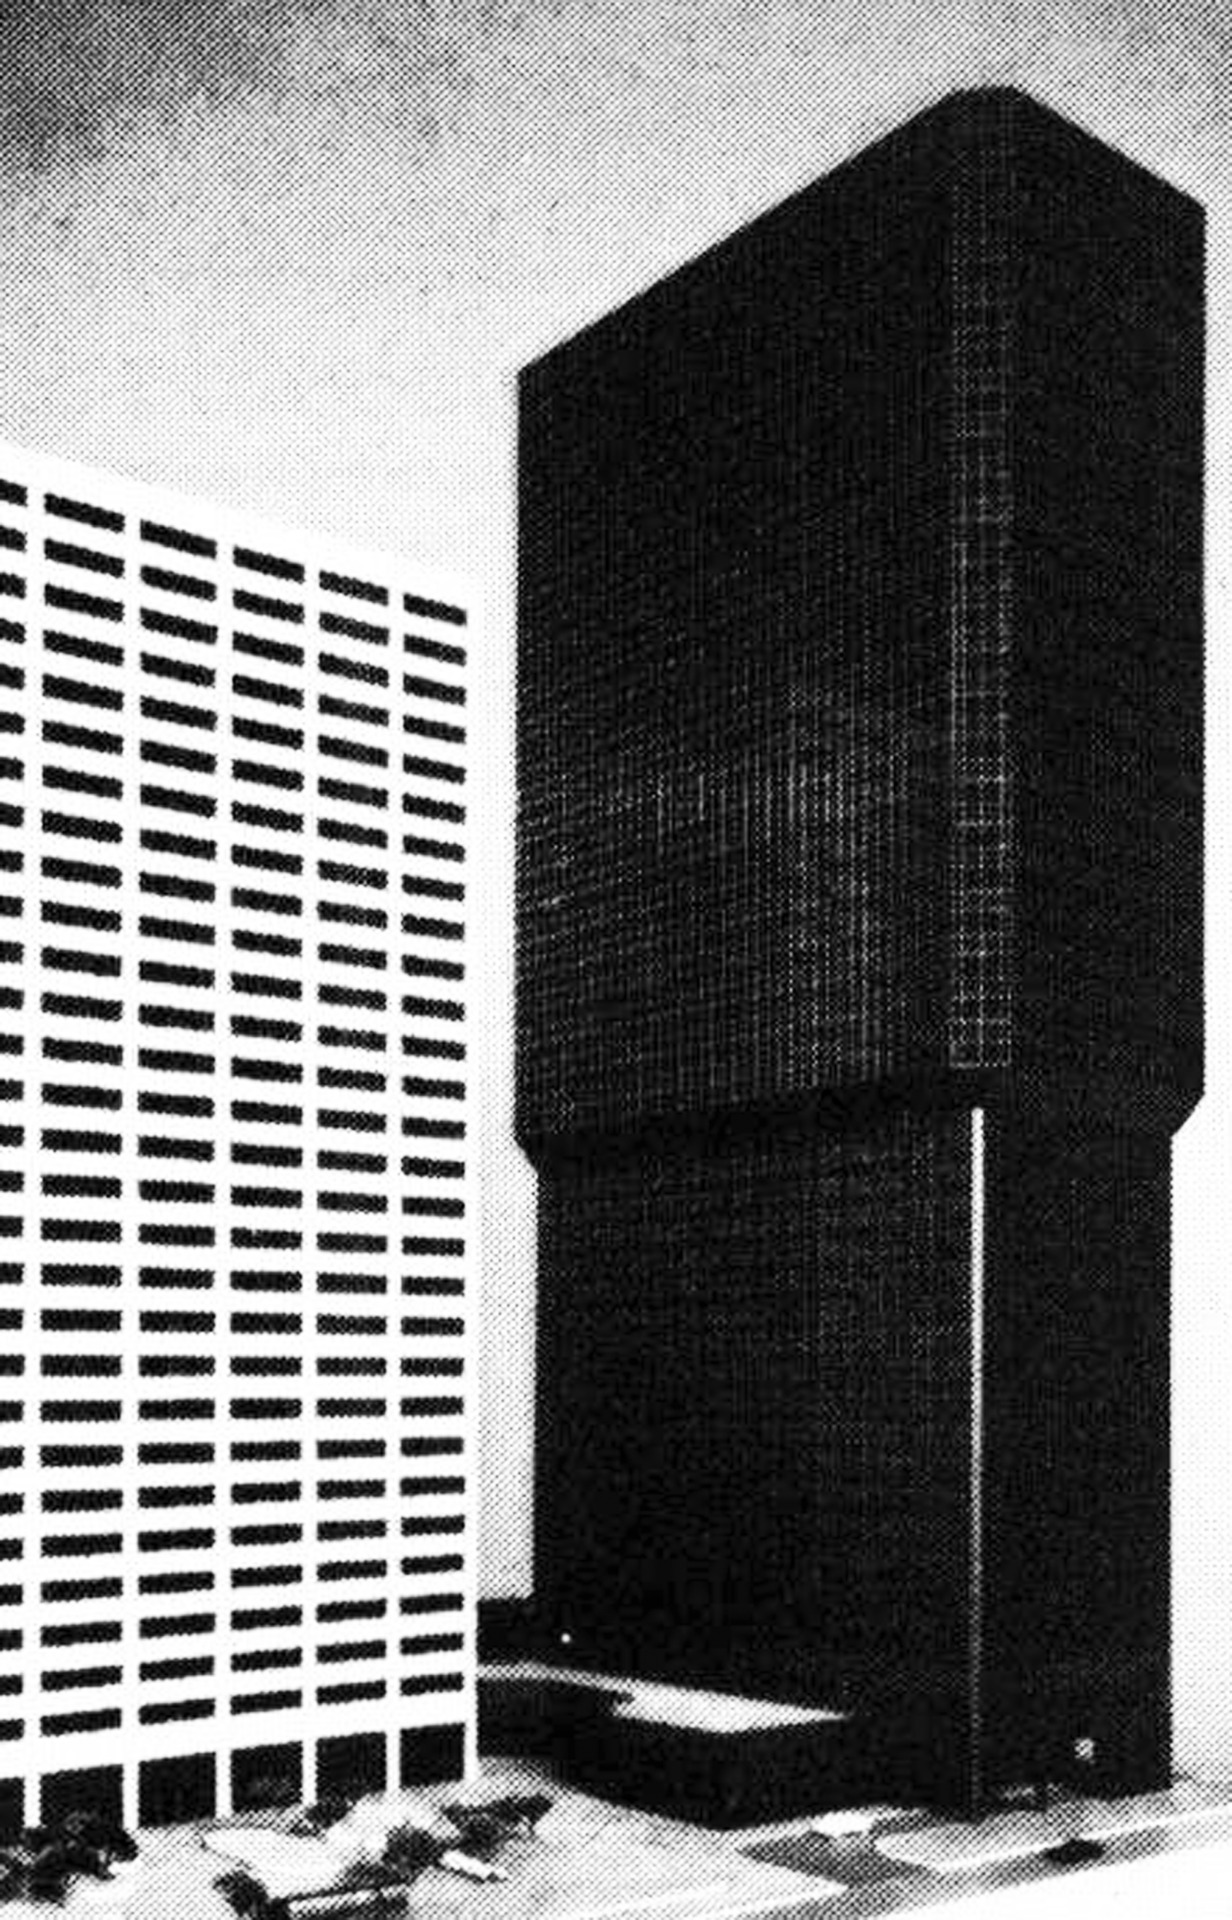 archiveofaffinities :     Hellmuth, Obata & Kassabaum, ARCO Tower / MCI Building / Jacobs Tower / 707 17th Street, Denver, Colorado, 1981